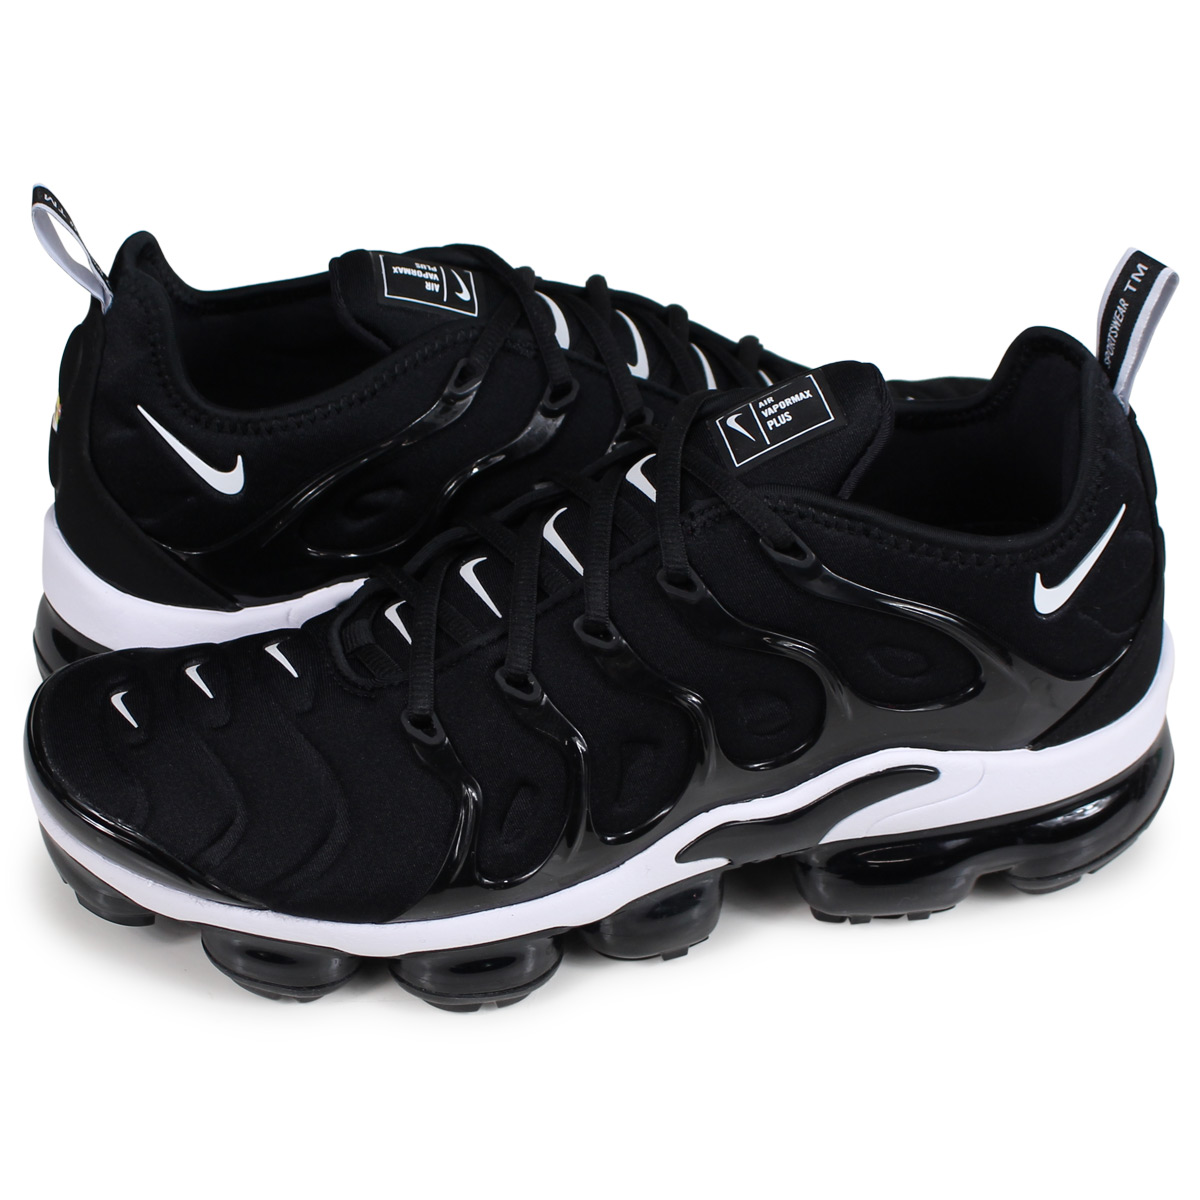 sports shoes 1bd73 ee92e Nike NIKE air vapor max plus sneakers men AIR VAPORMAX PLUS black  924,453-011 [load planned Shinnyu load in reservation product 11/22  containing]